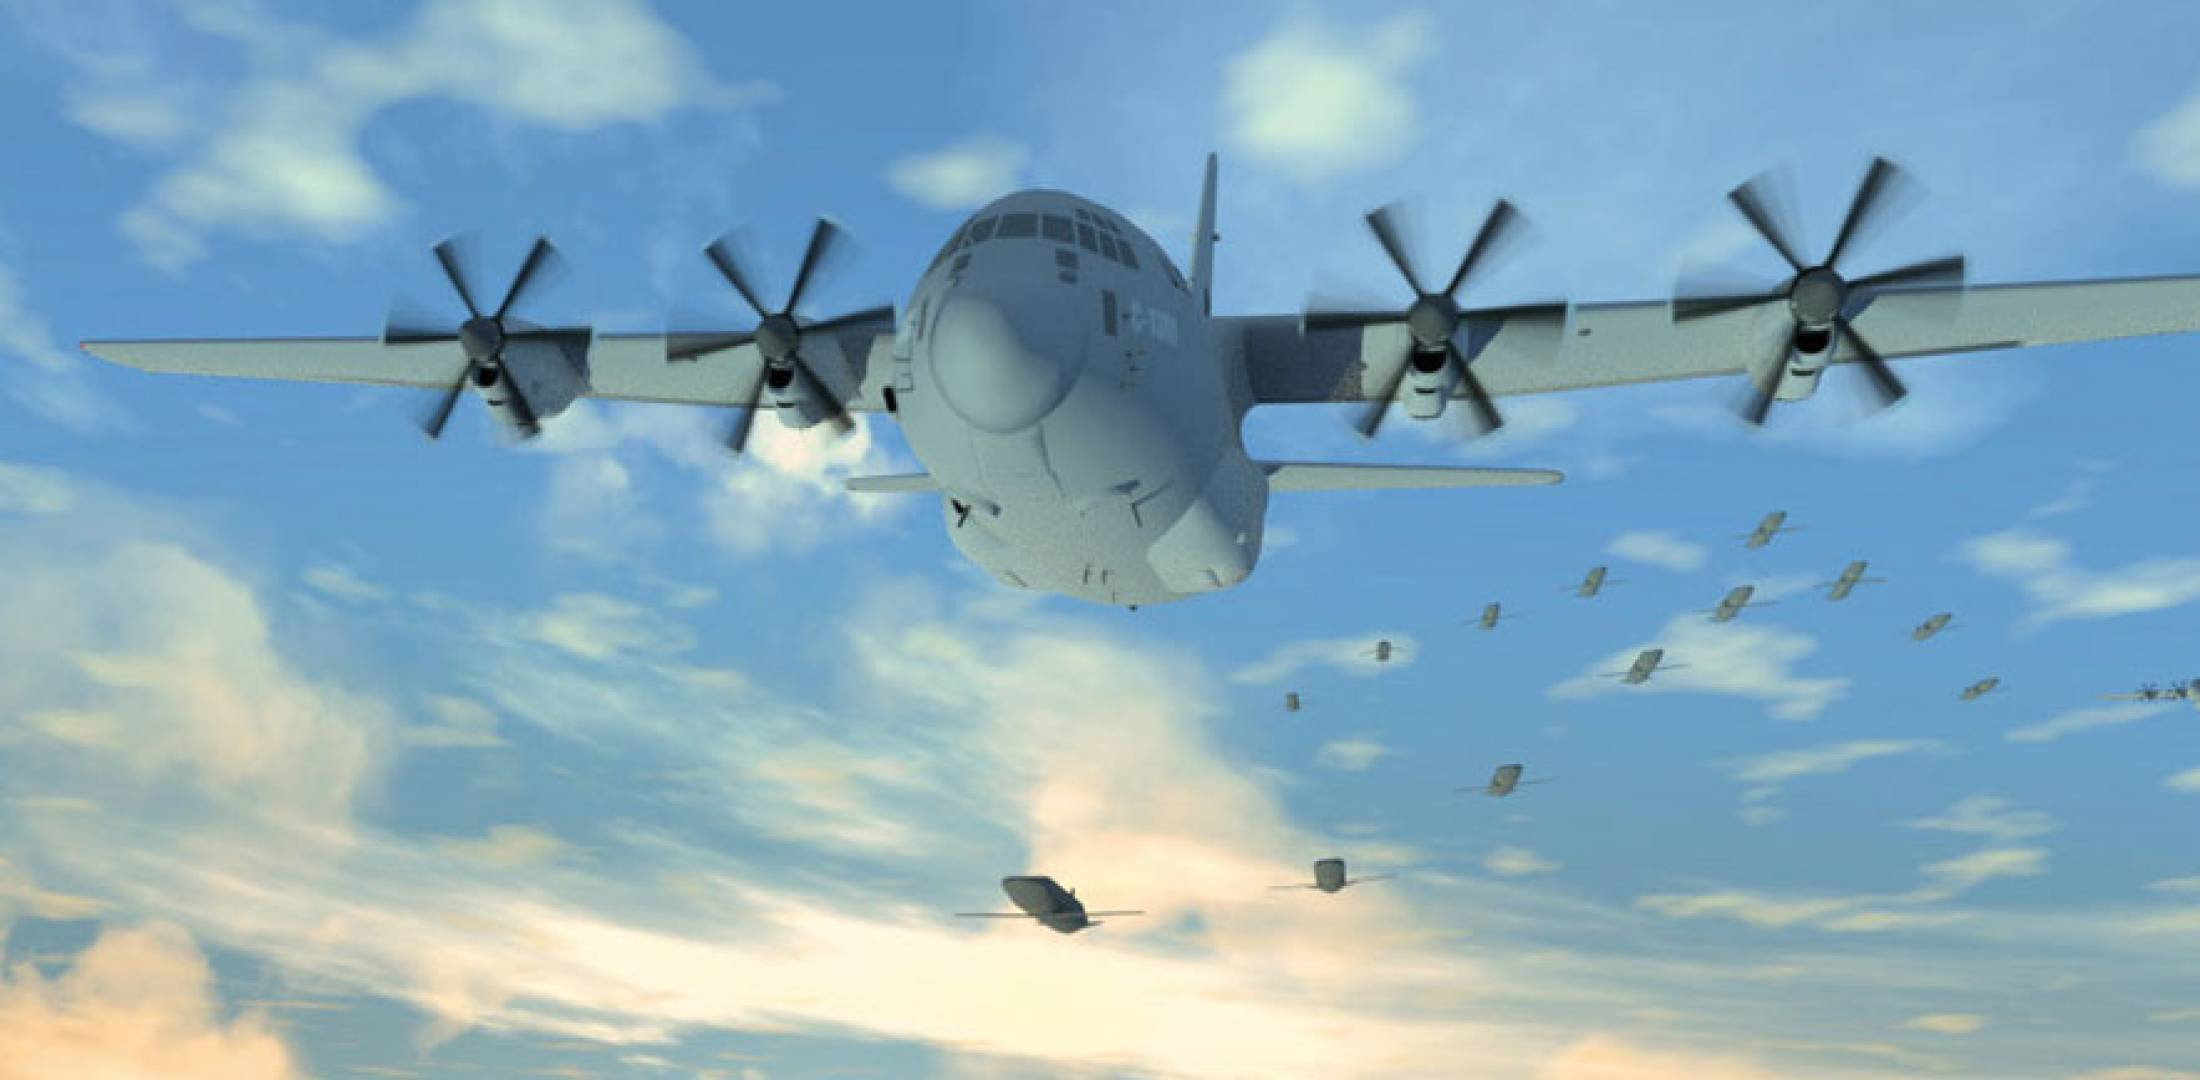 DARPA's Gremlins to Launch & Recover Four Drones From C-130 by Next Year ile ilgili görsel sonucu